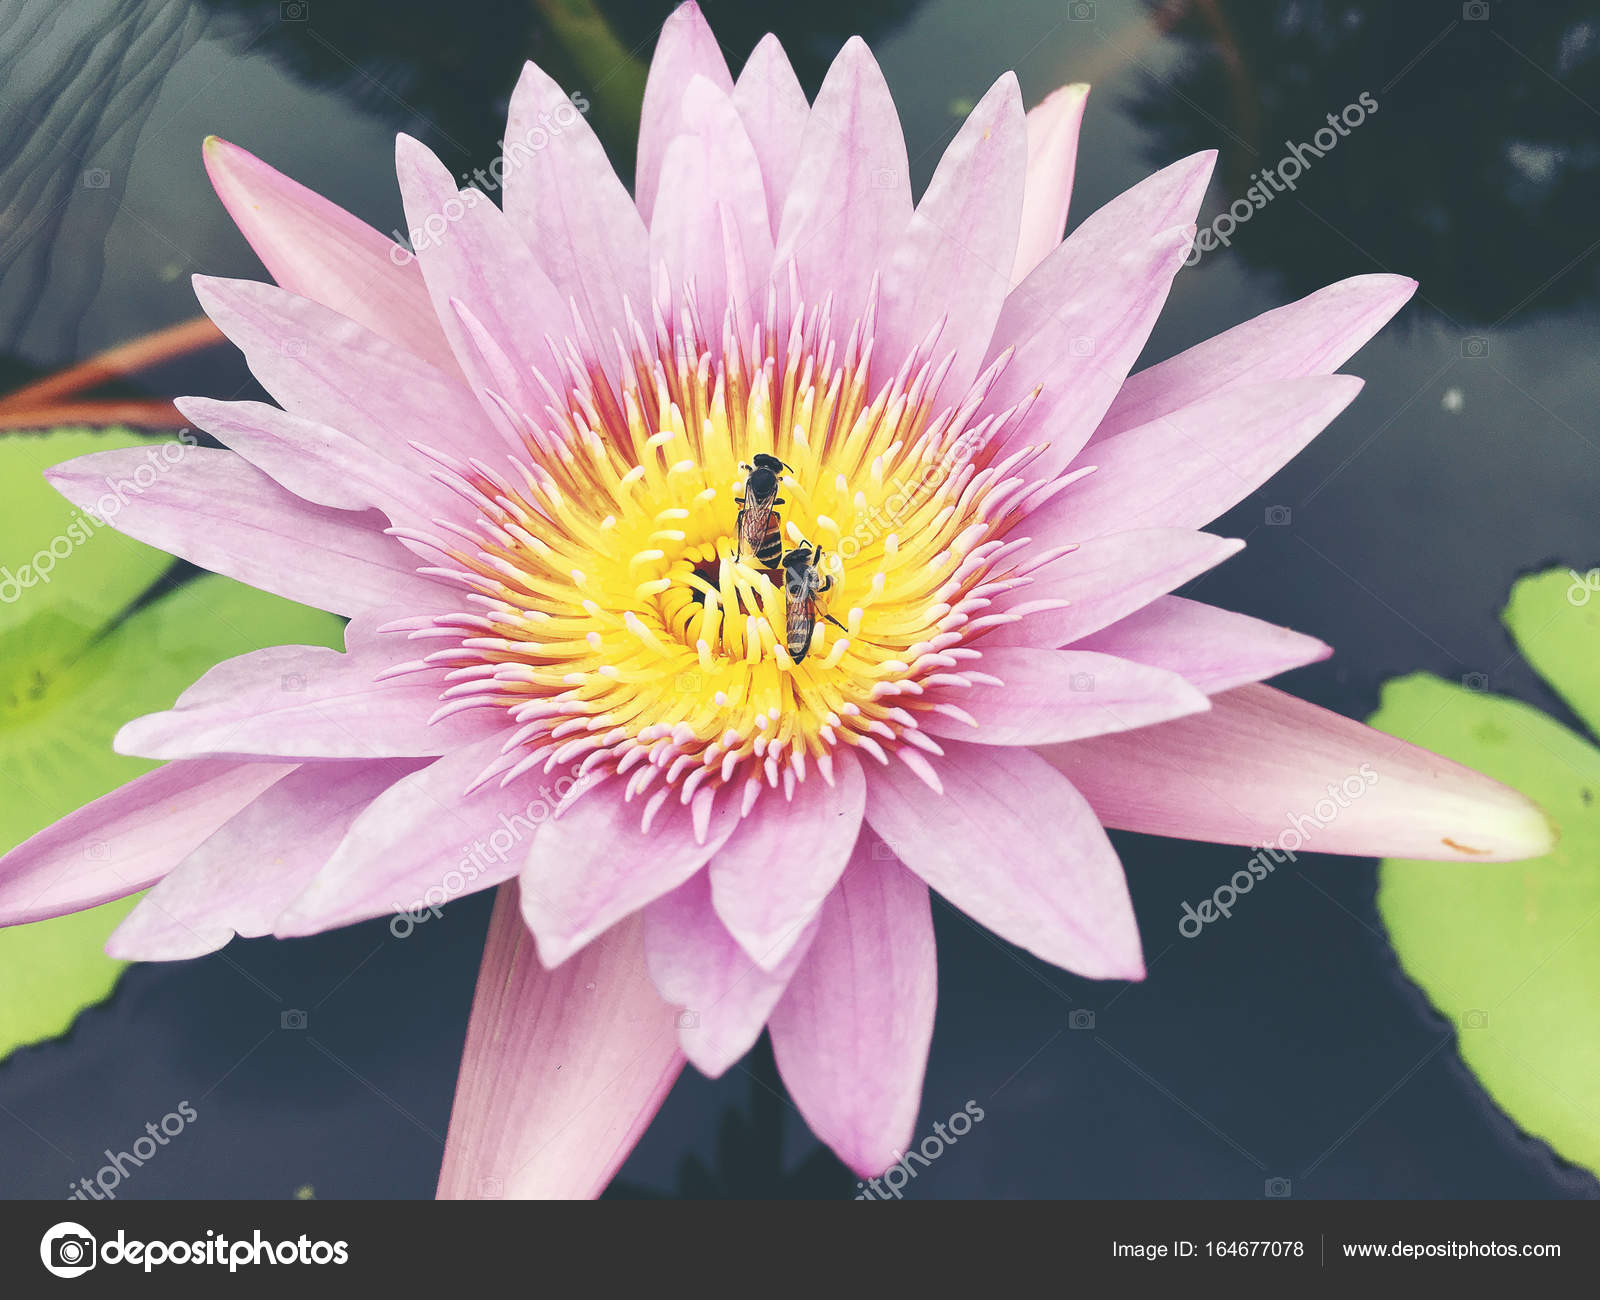 Honey bee collects pollen showing its pollen baskets and flies away honey bee collects pollen showing its pollen baskets and flies away on lotus flower in the pond saturated colors and vibrant detail make this an almost izmirmasajfo